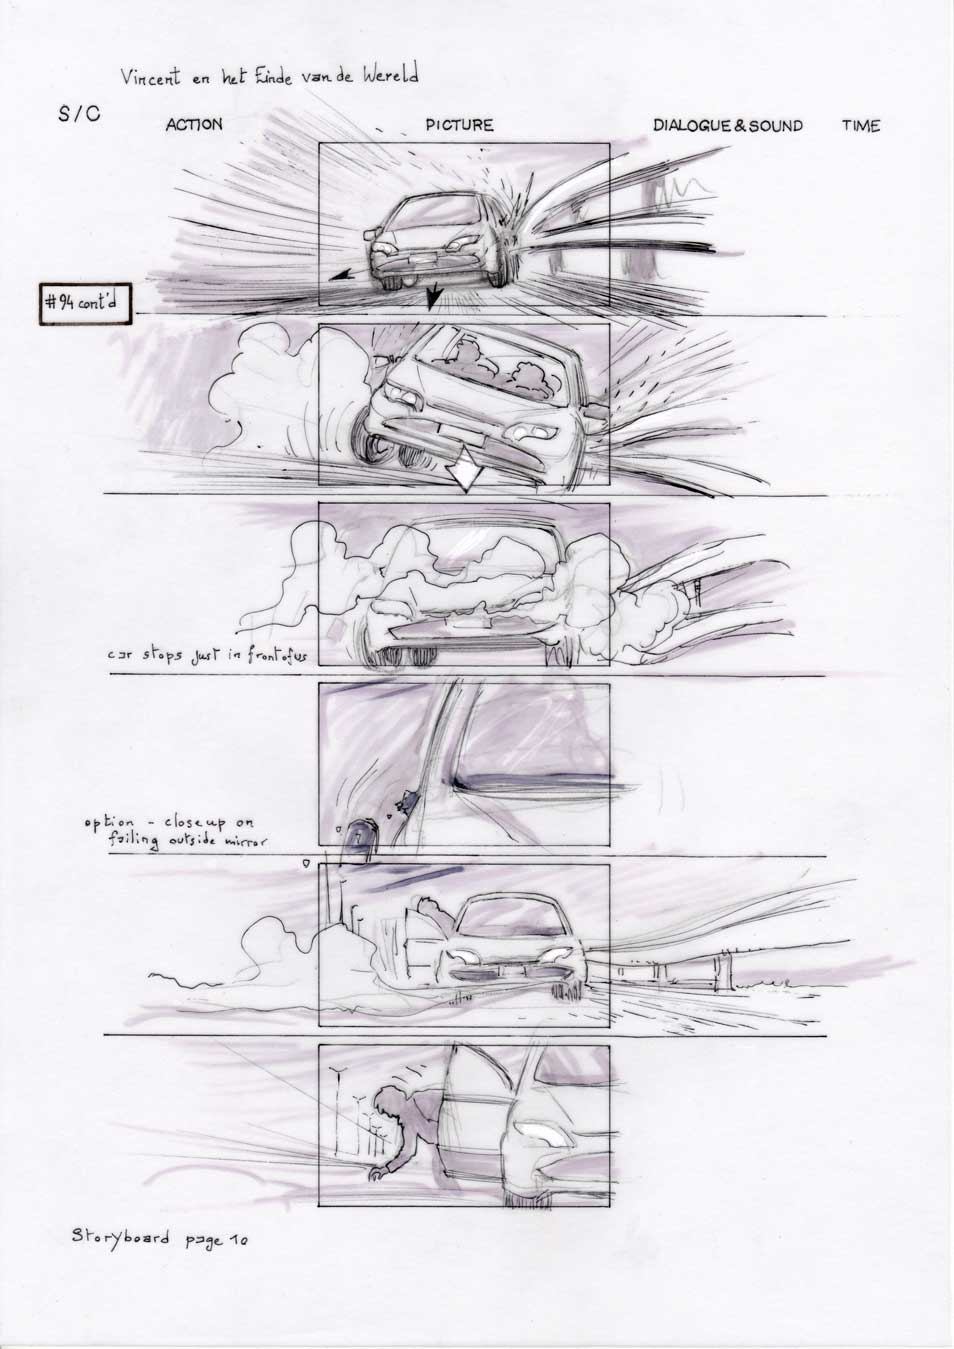 Vincent and the End of the World storyboard 10